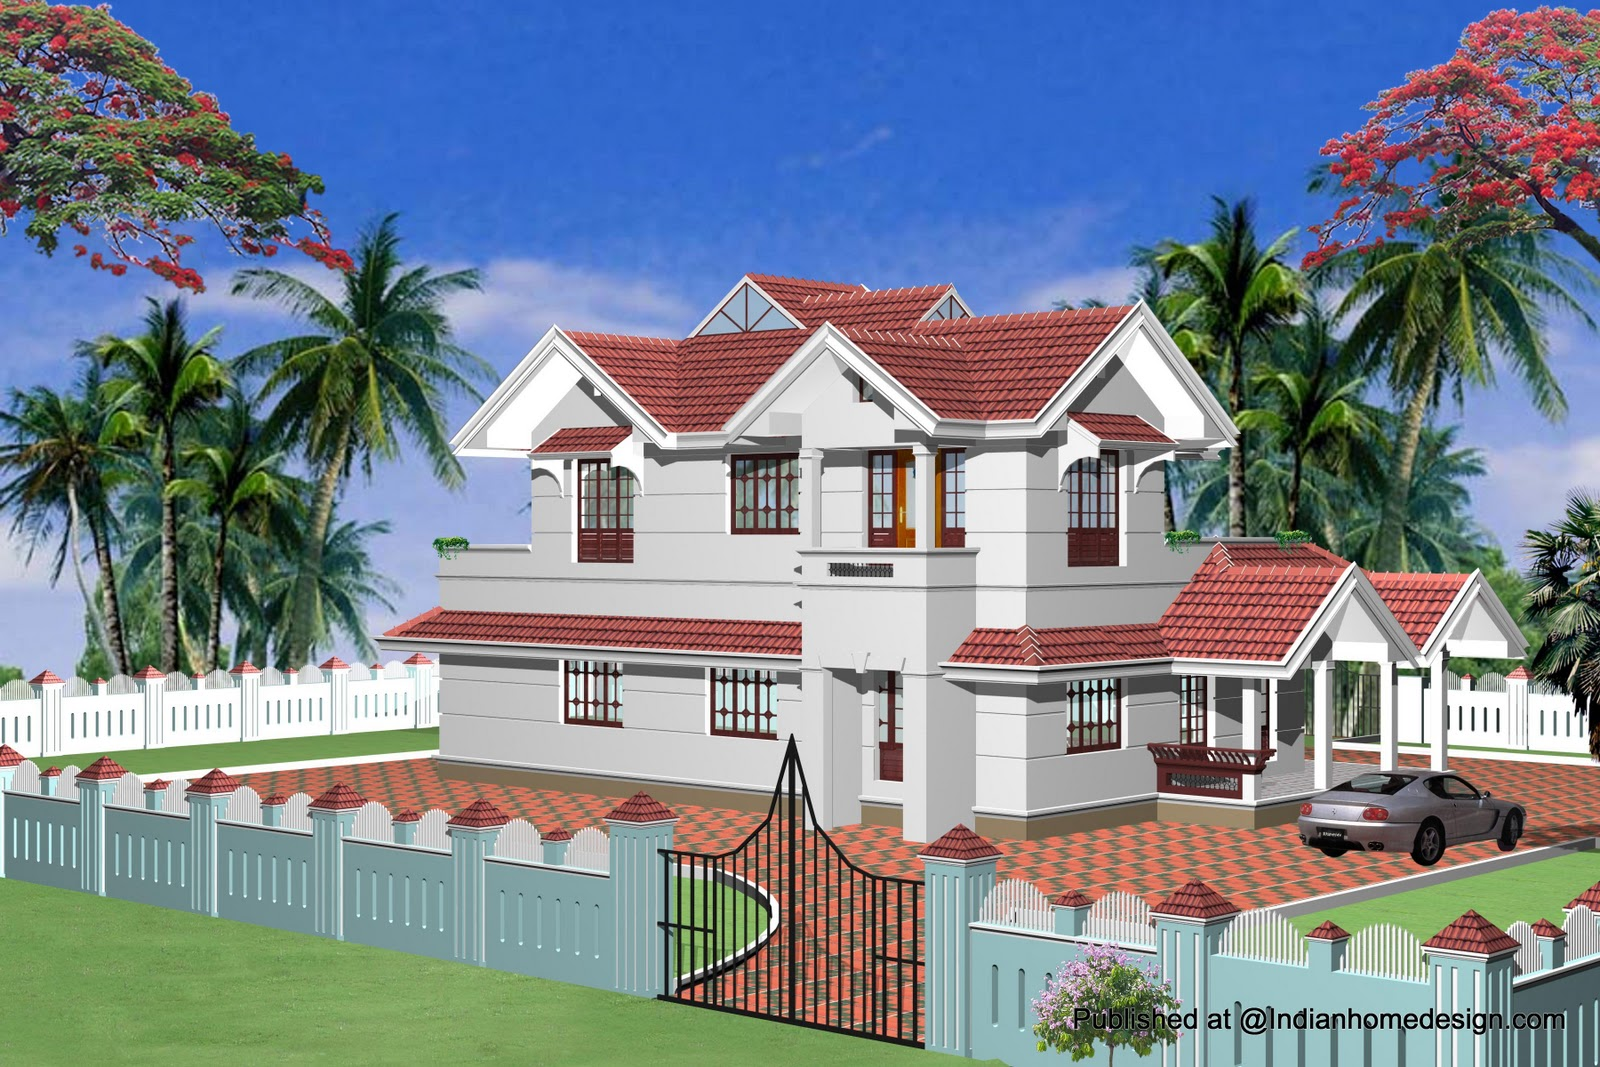 Indian exterior house designs rustic home exterior designs for Exterior home designs india